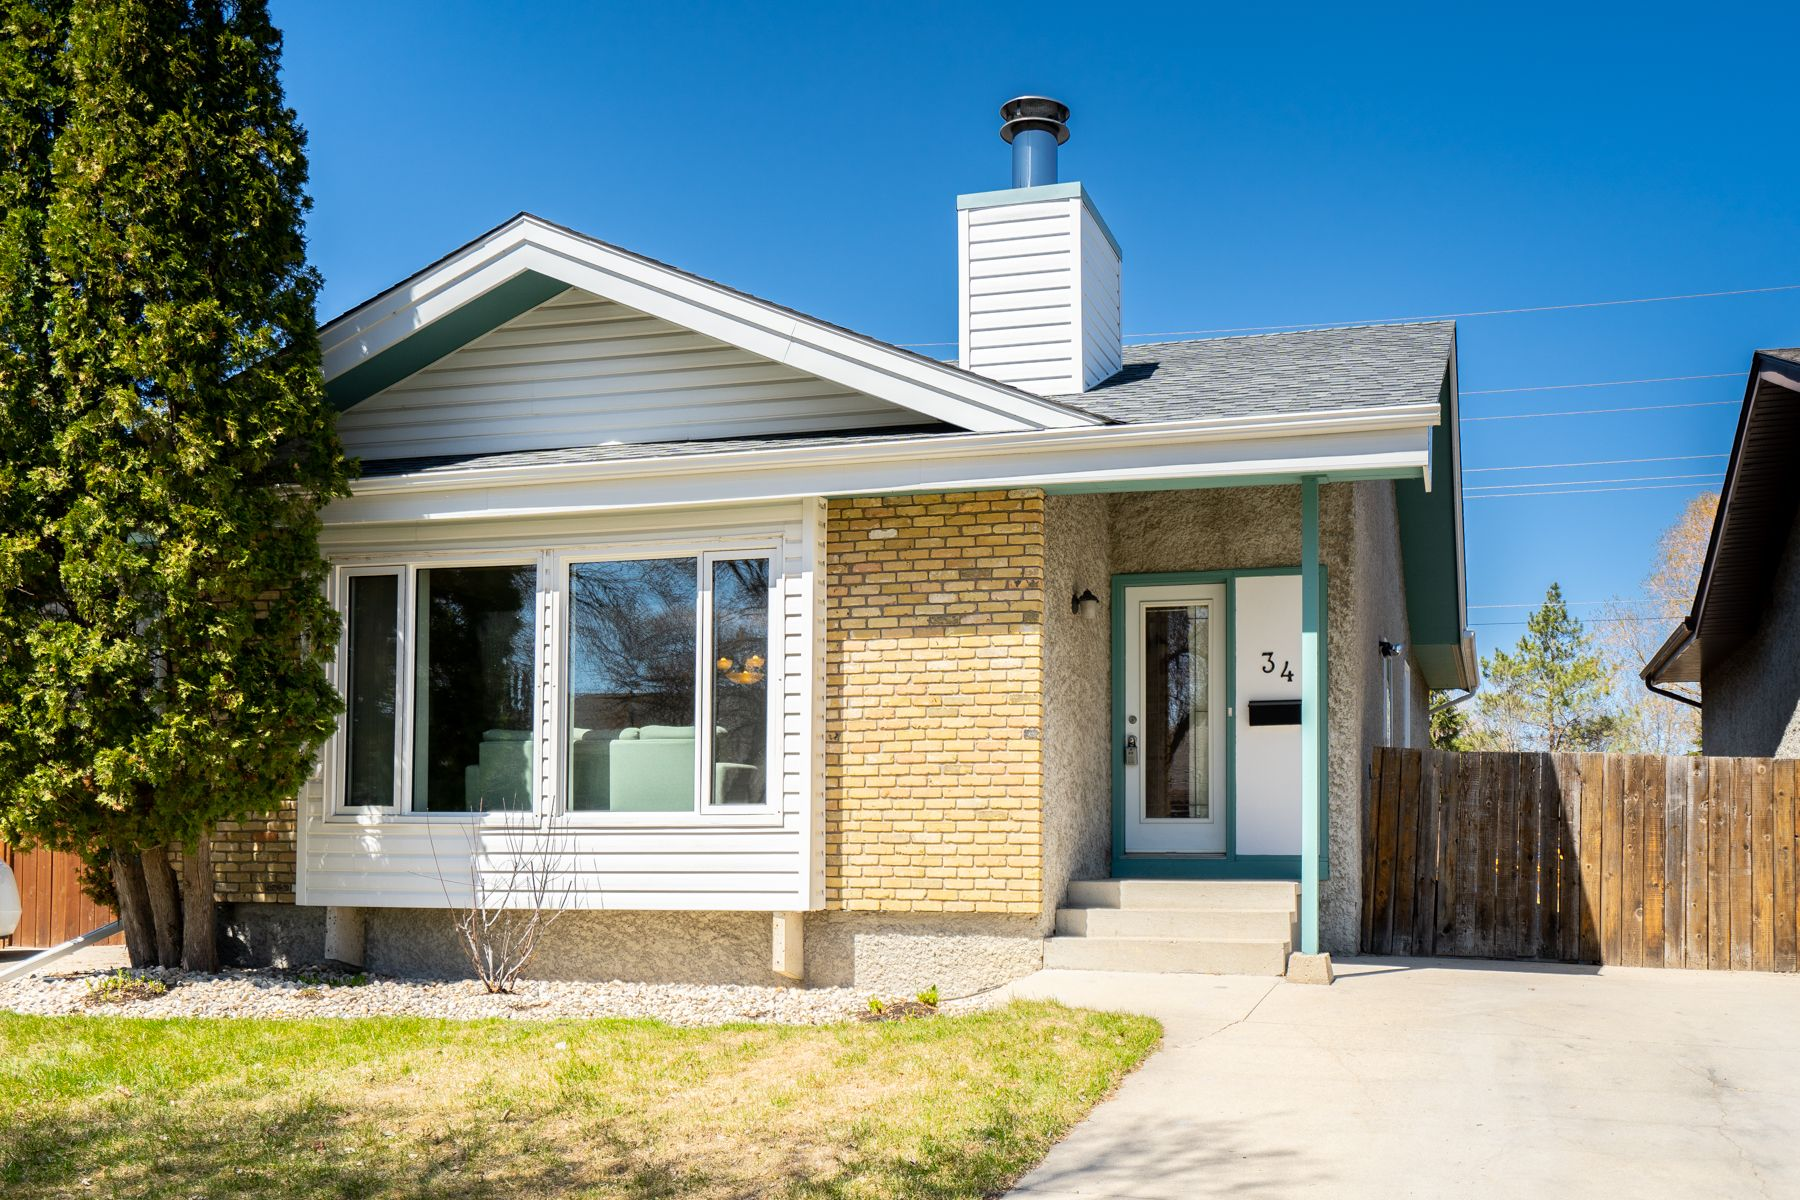 Main Photo: 34 Mansfield Crescent in Winnipeg: River Park South House for sale (2F)  : MLS®# 202009485